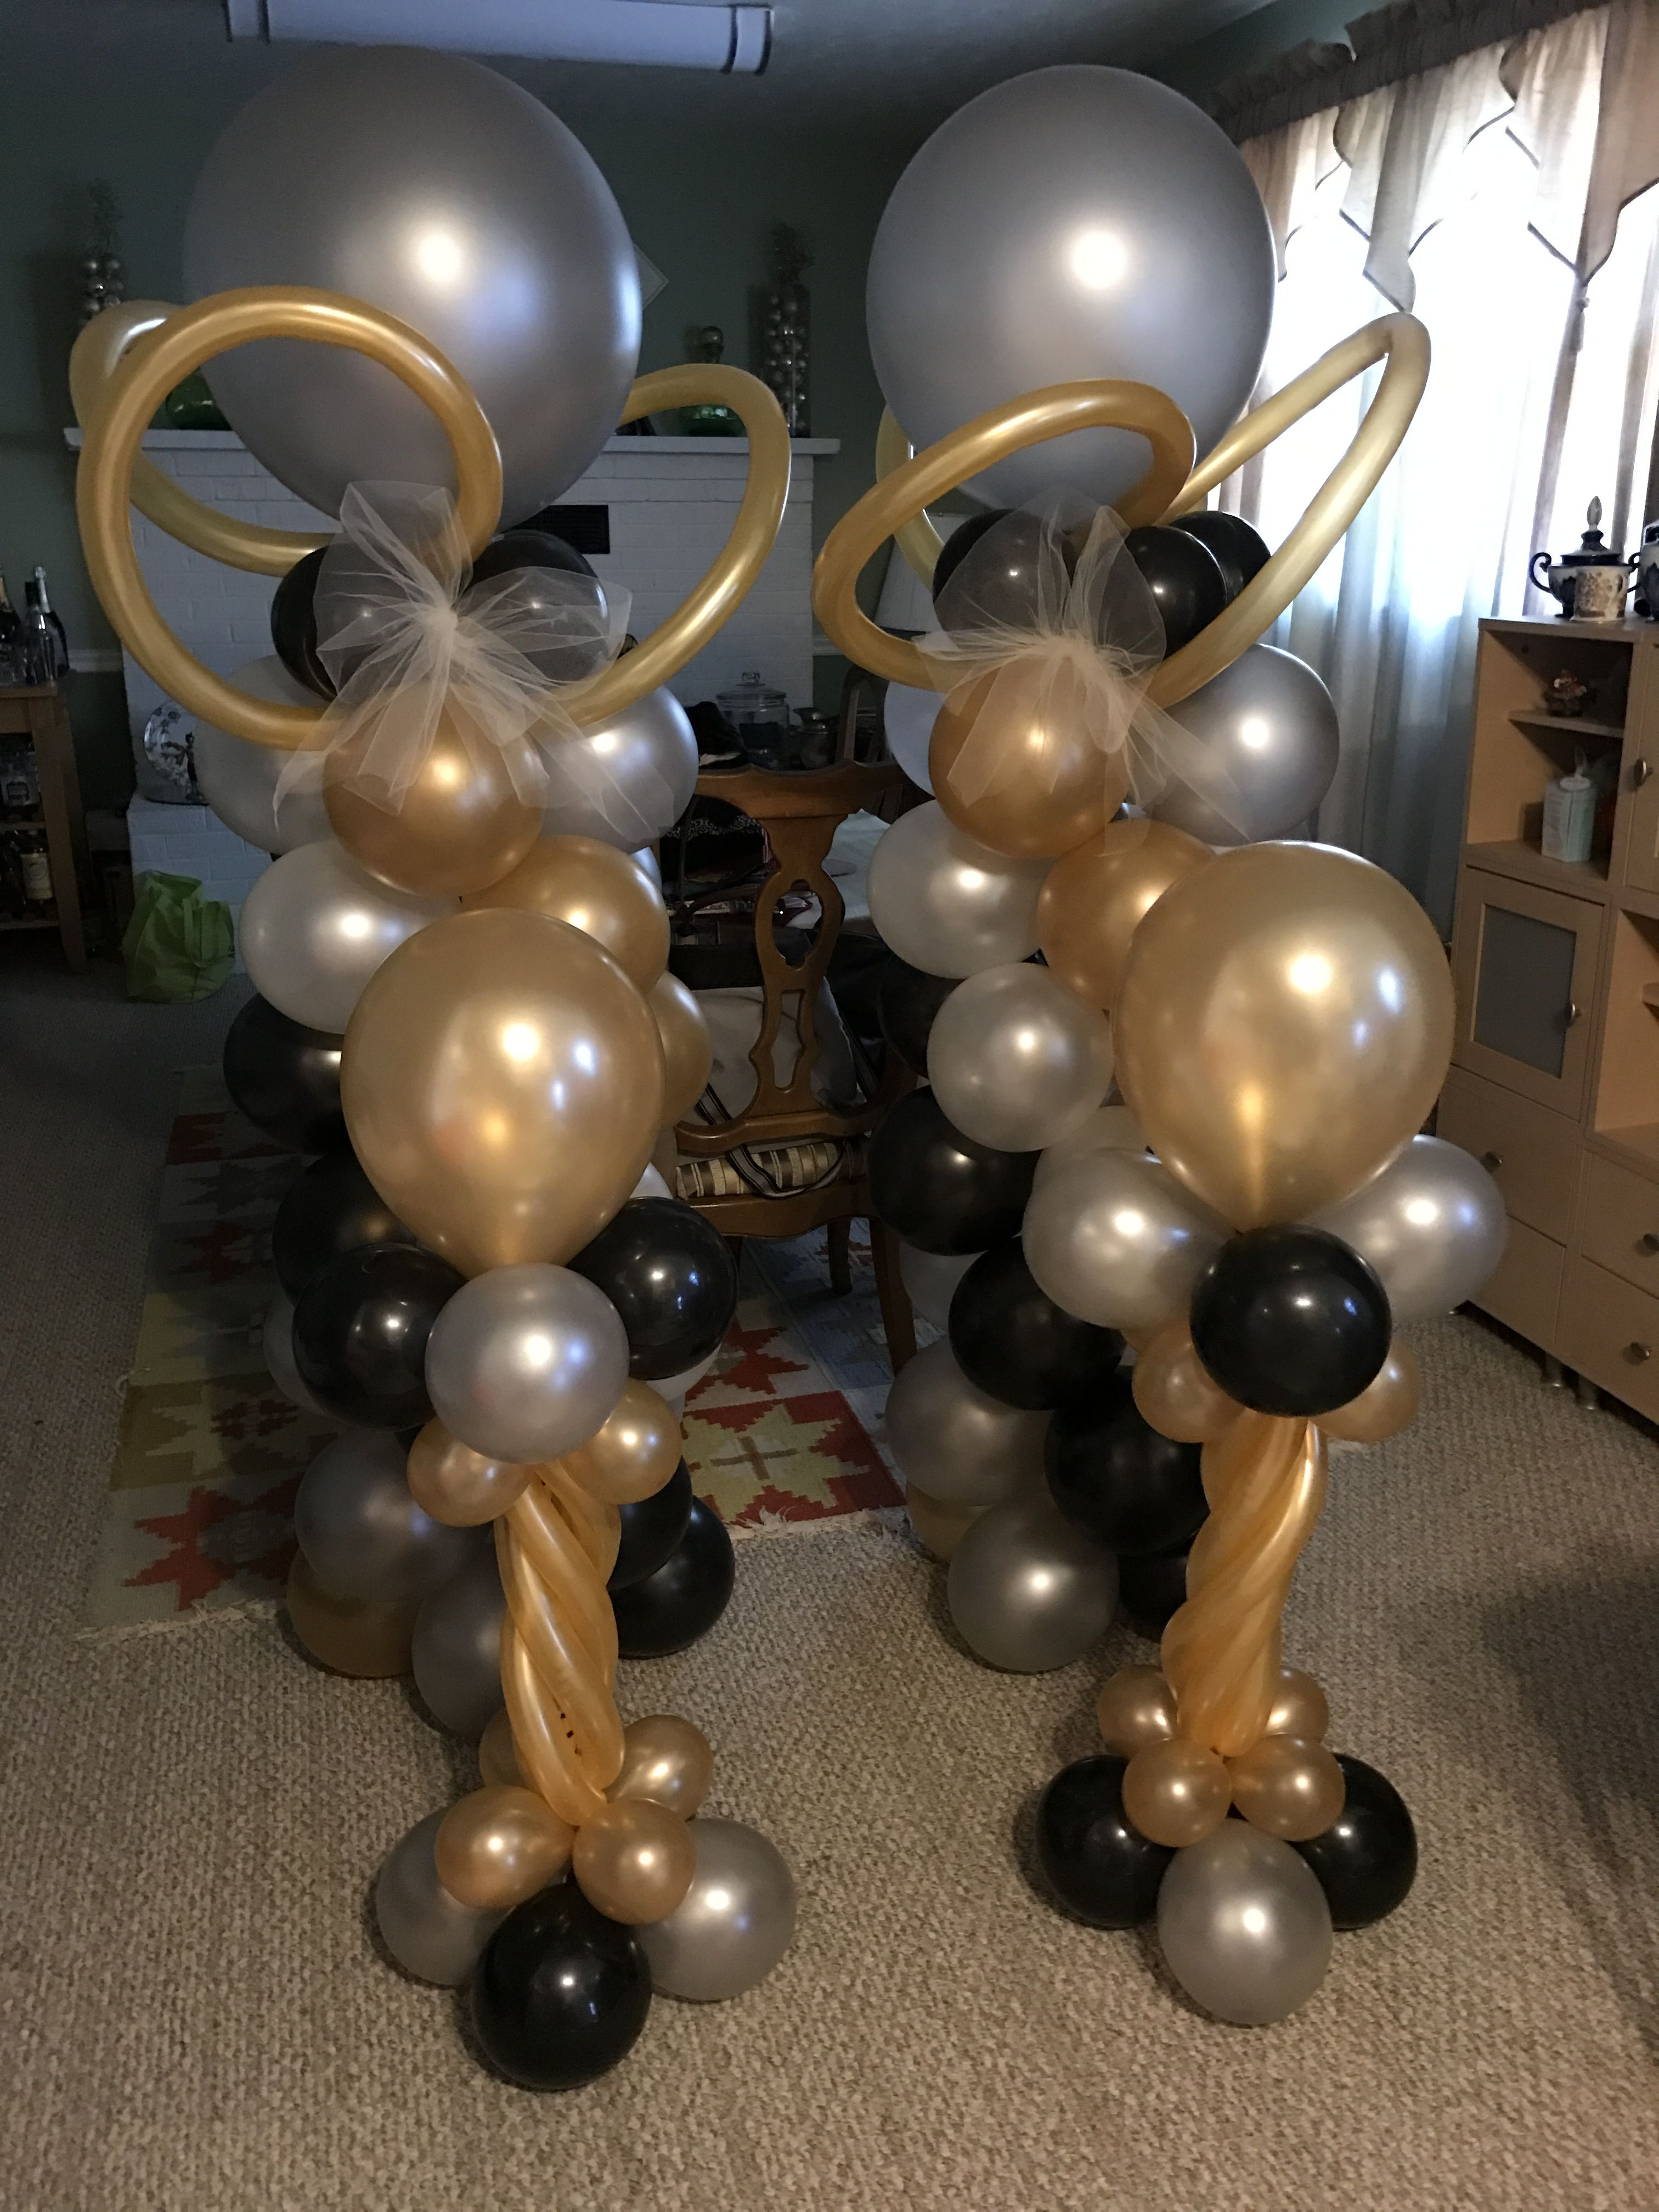 Gold Silver White Black Balloon Stand Silver Party Decorations Black And White Balloons Balloon Stands